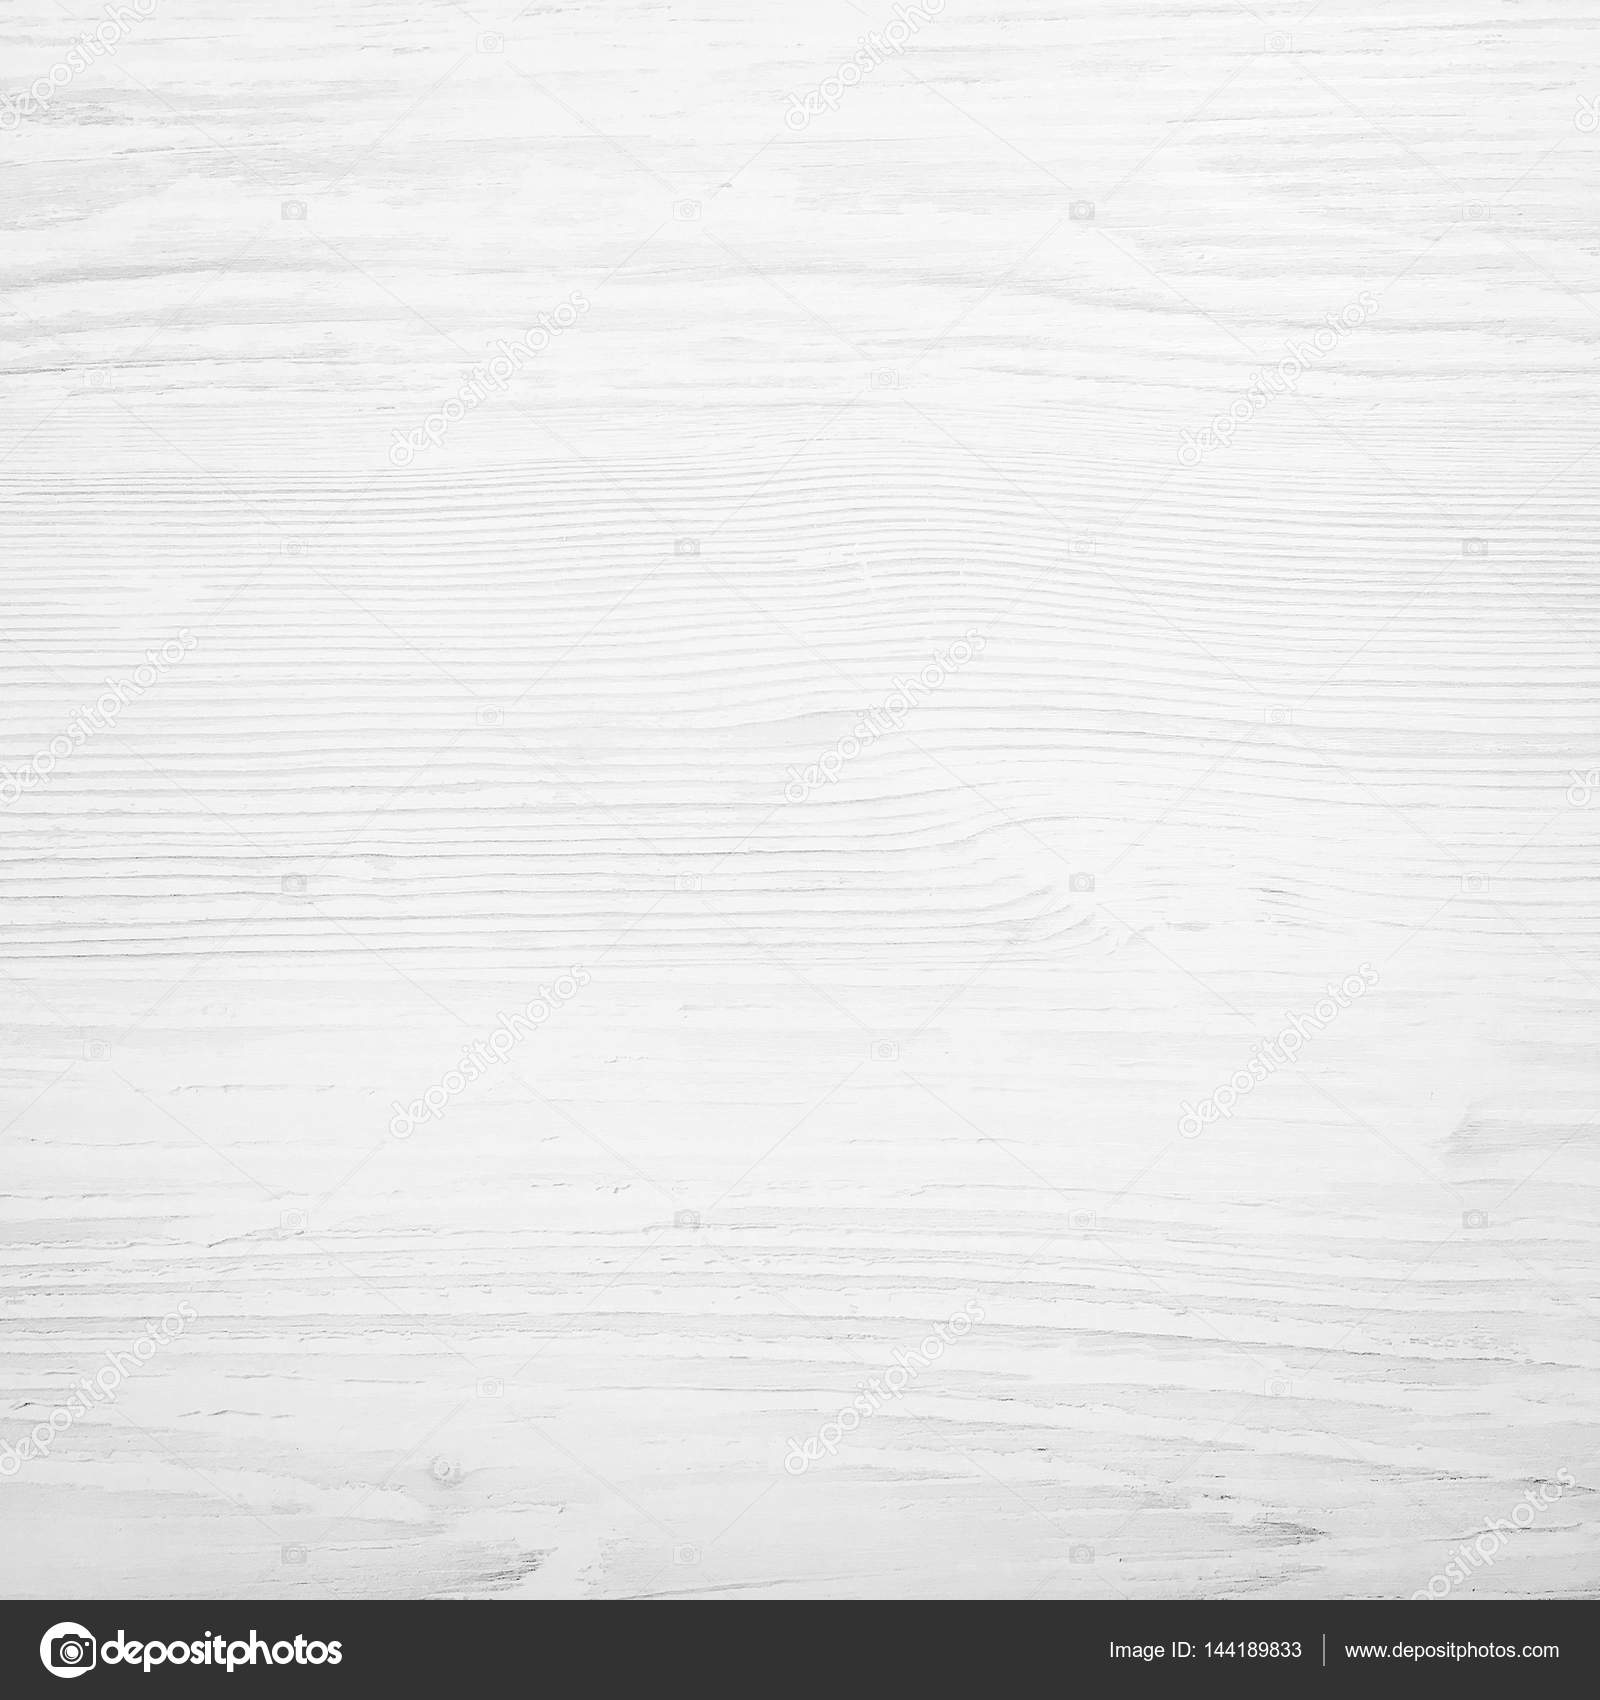 washed wood white wooden texture old wooden background stock photo t trifonoff 144189833. Black Bedroom Furniture Sets. Home Design Ideas